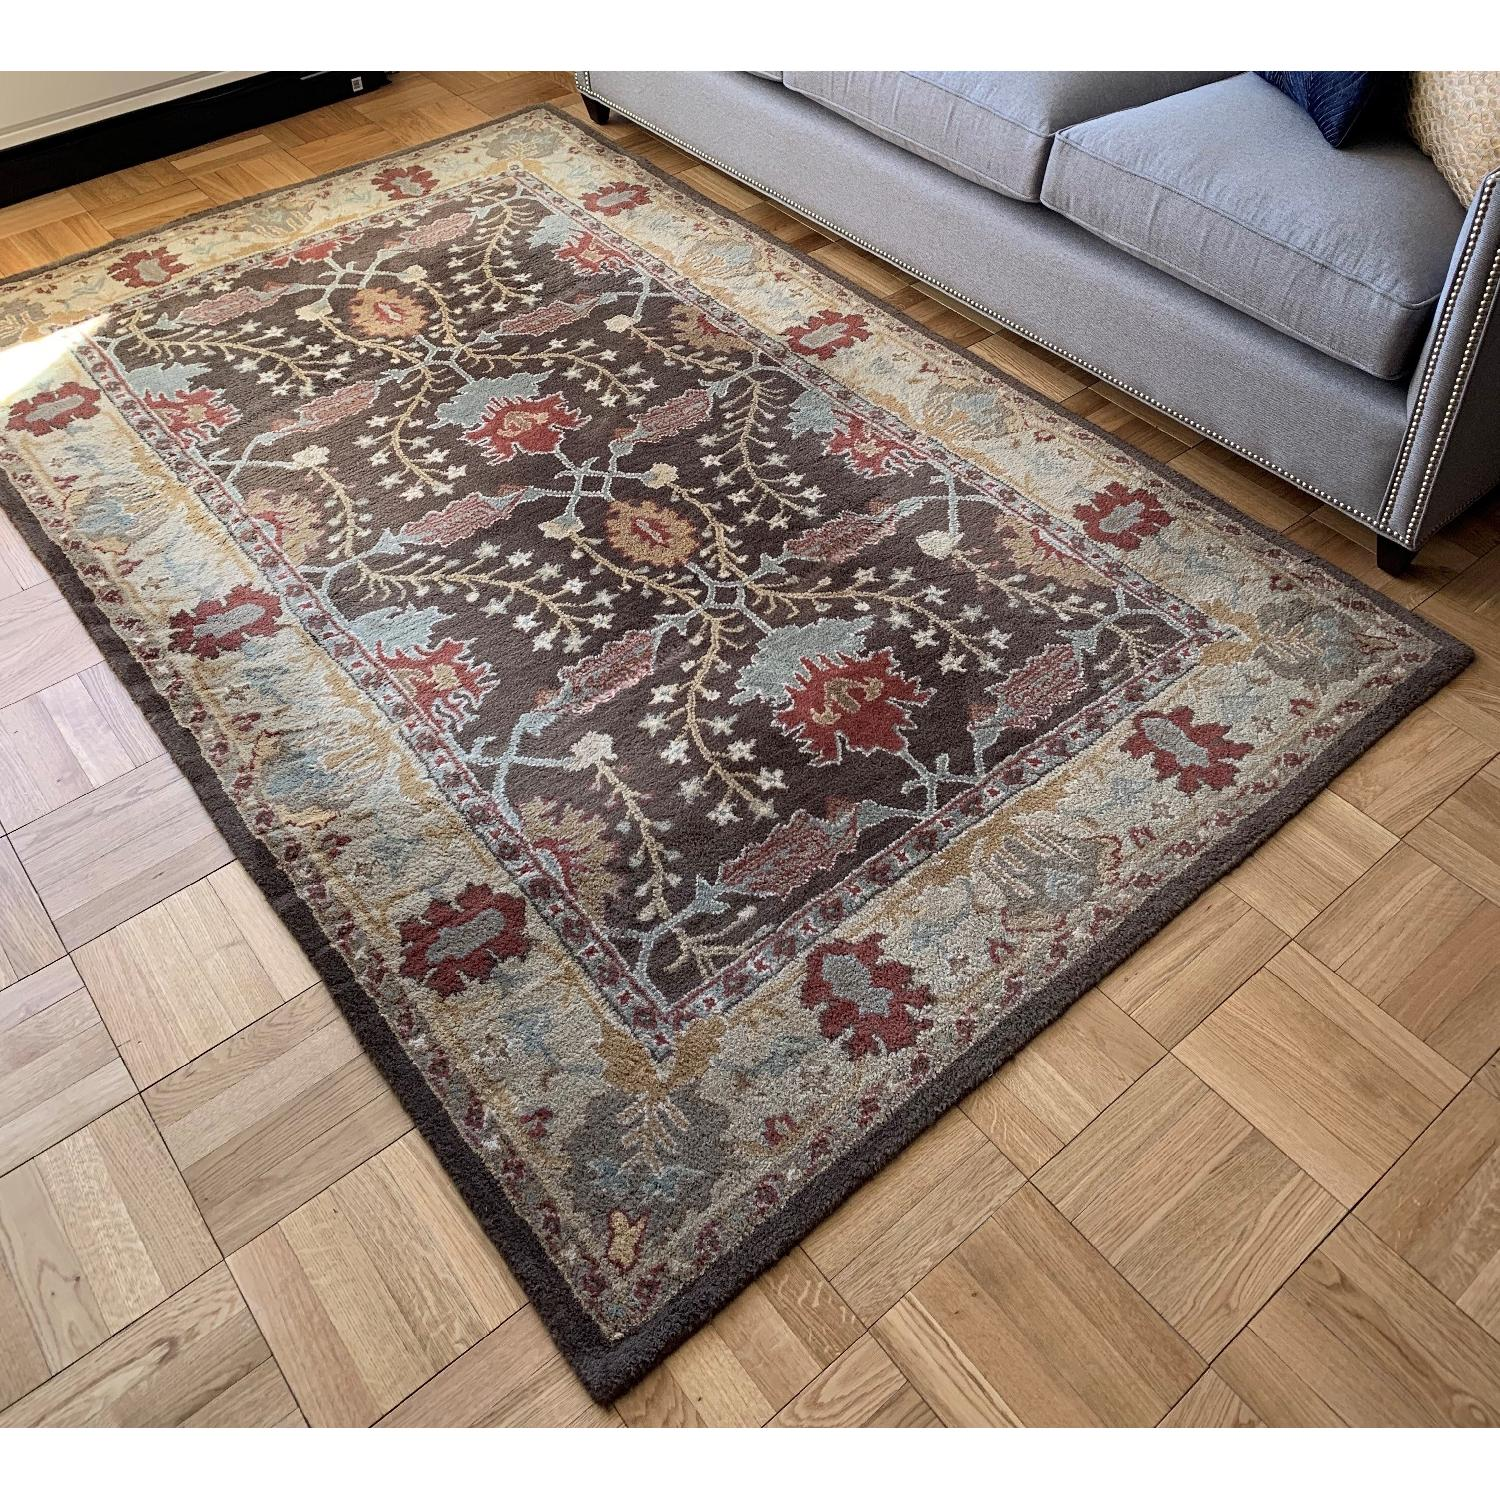 Pottery Barn Brandon Persian-Style Wool Area Rug-1